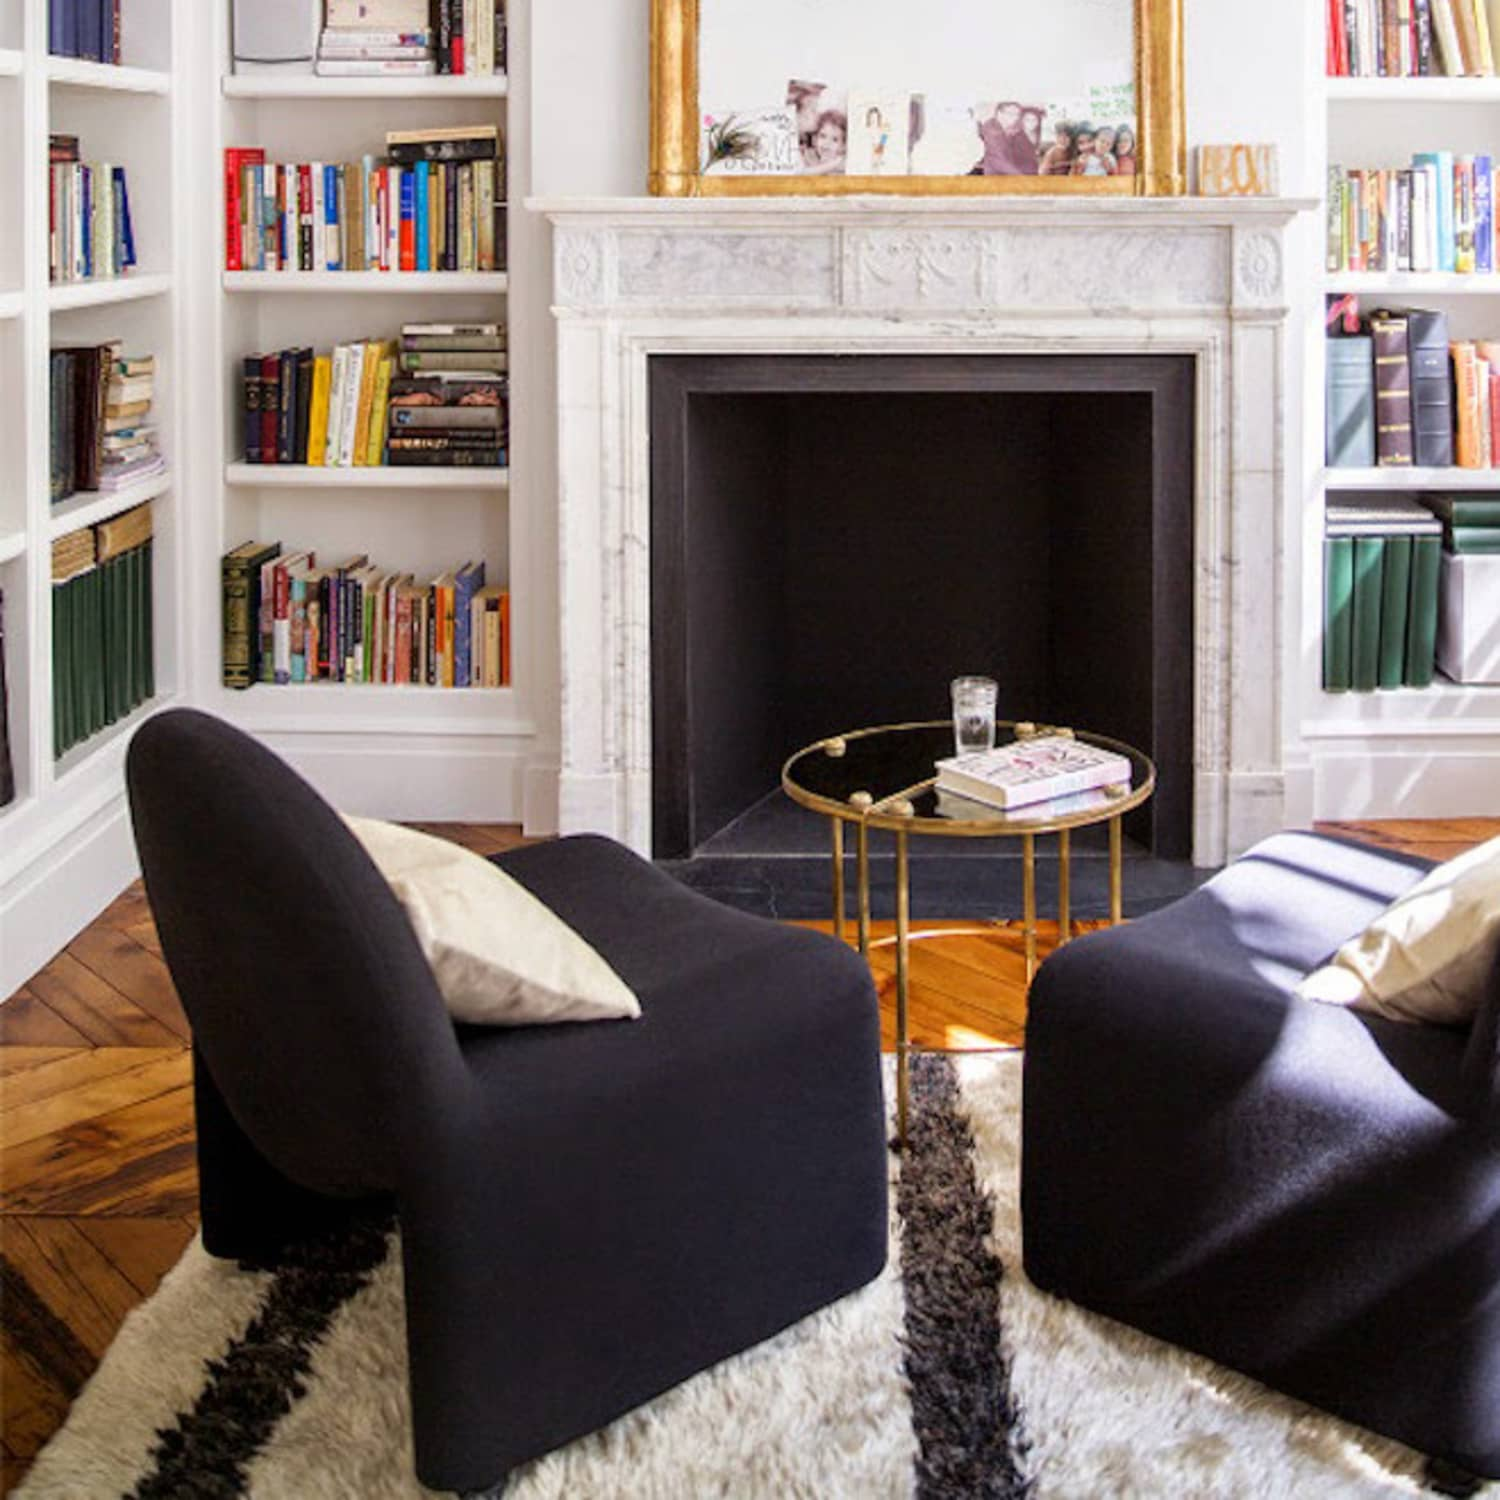 How To Set Up Your Living Room Without A Focus On The Tv Apartment Therapy